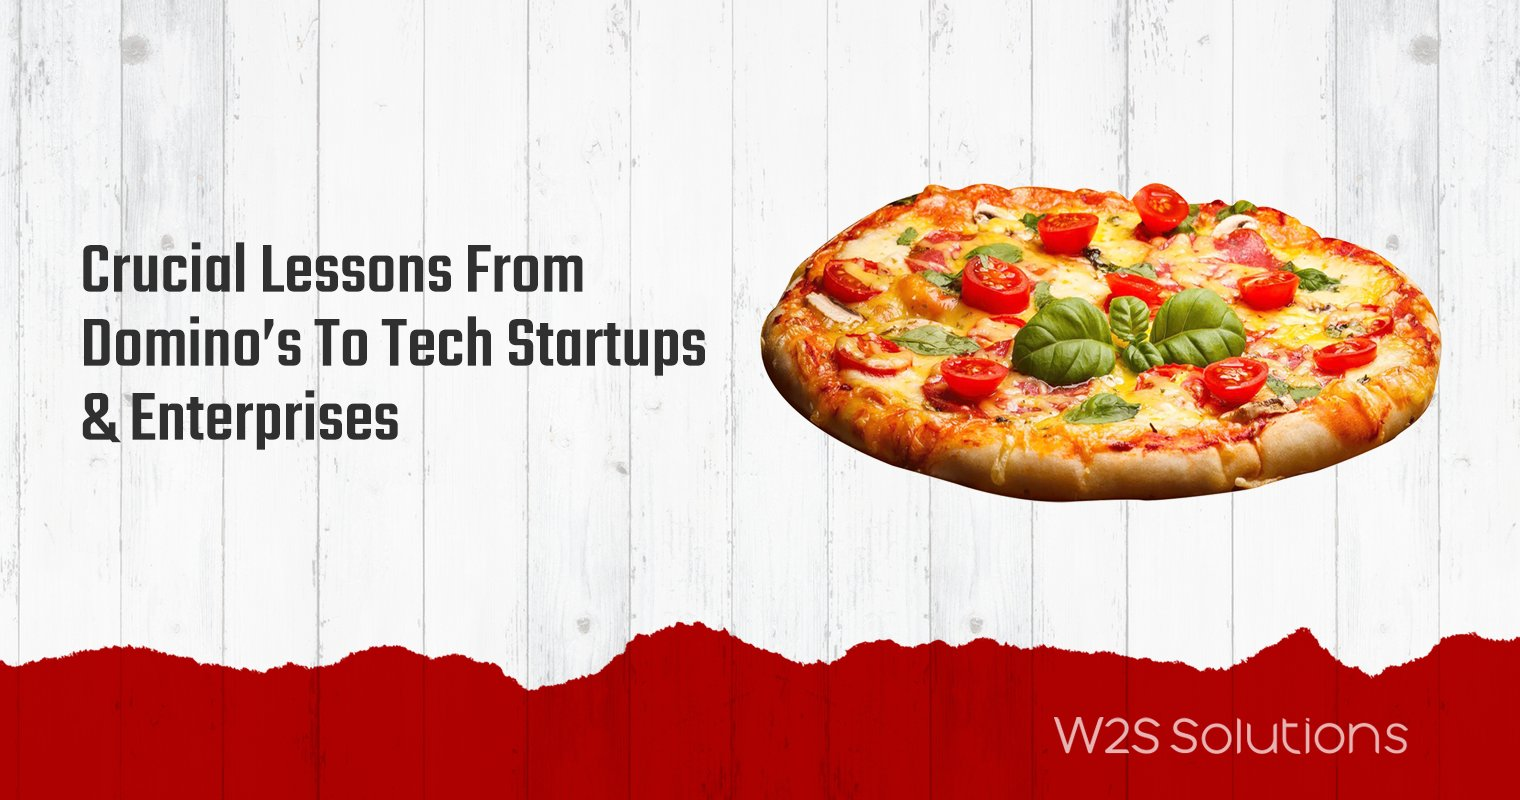 Crucial lessons from Domino's to tech startups and enterprises